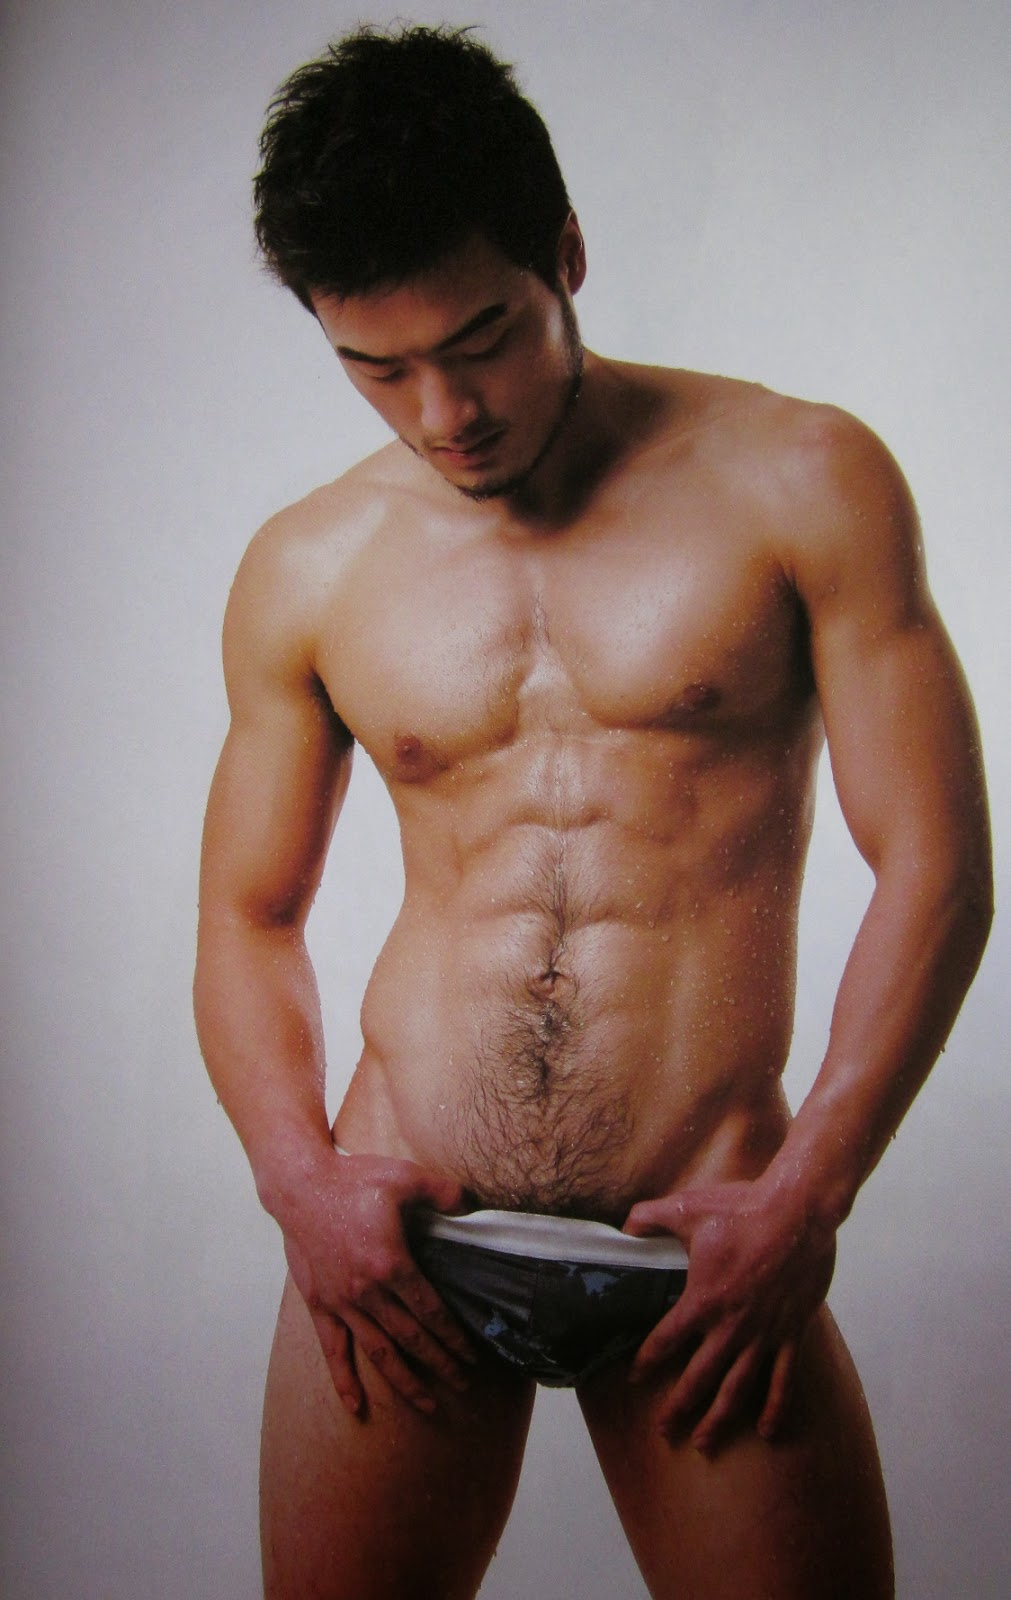 http://gayasiancollection.com/chinese-hunk-james-wan/